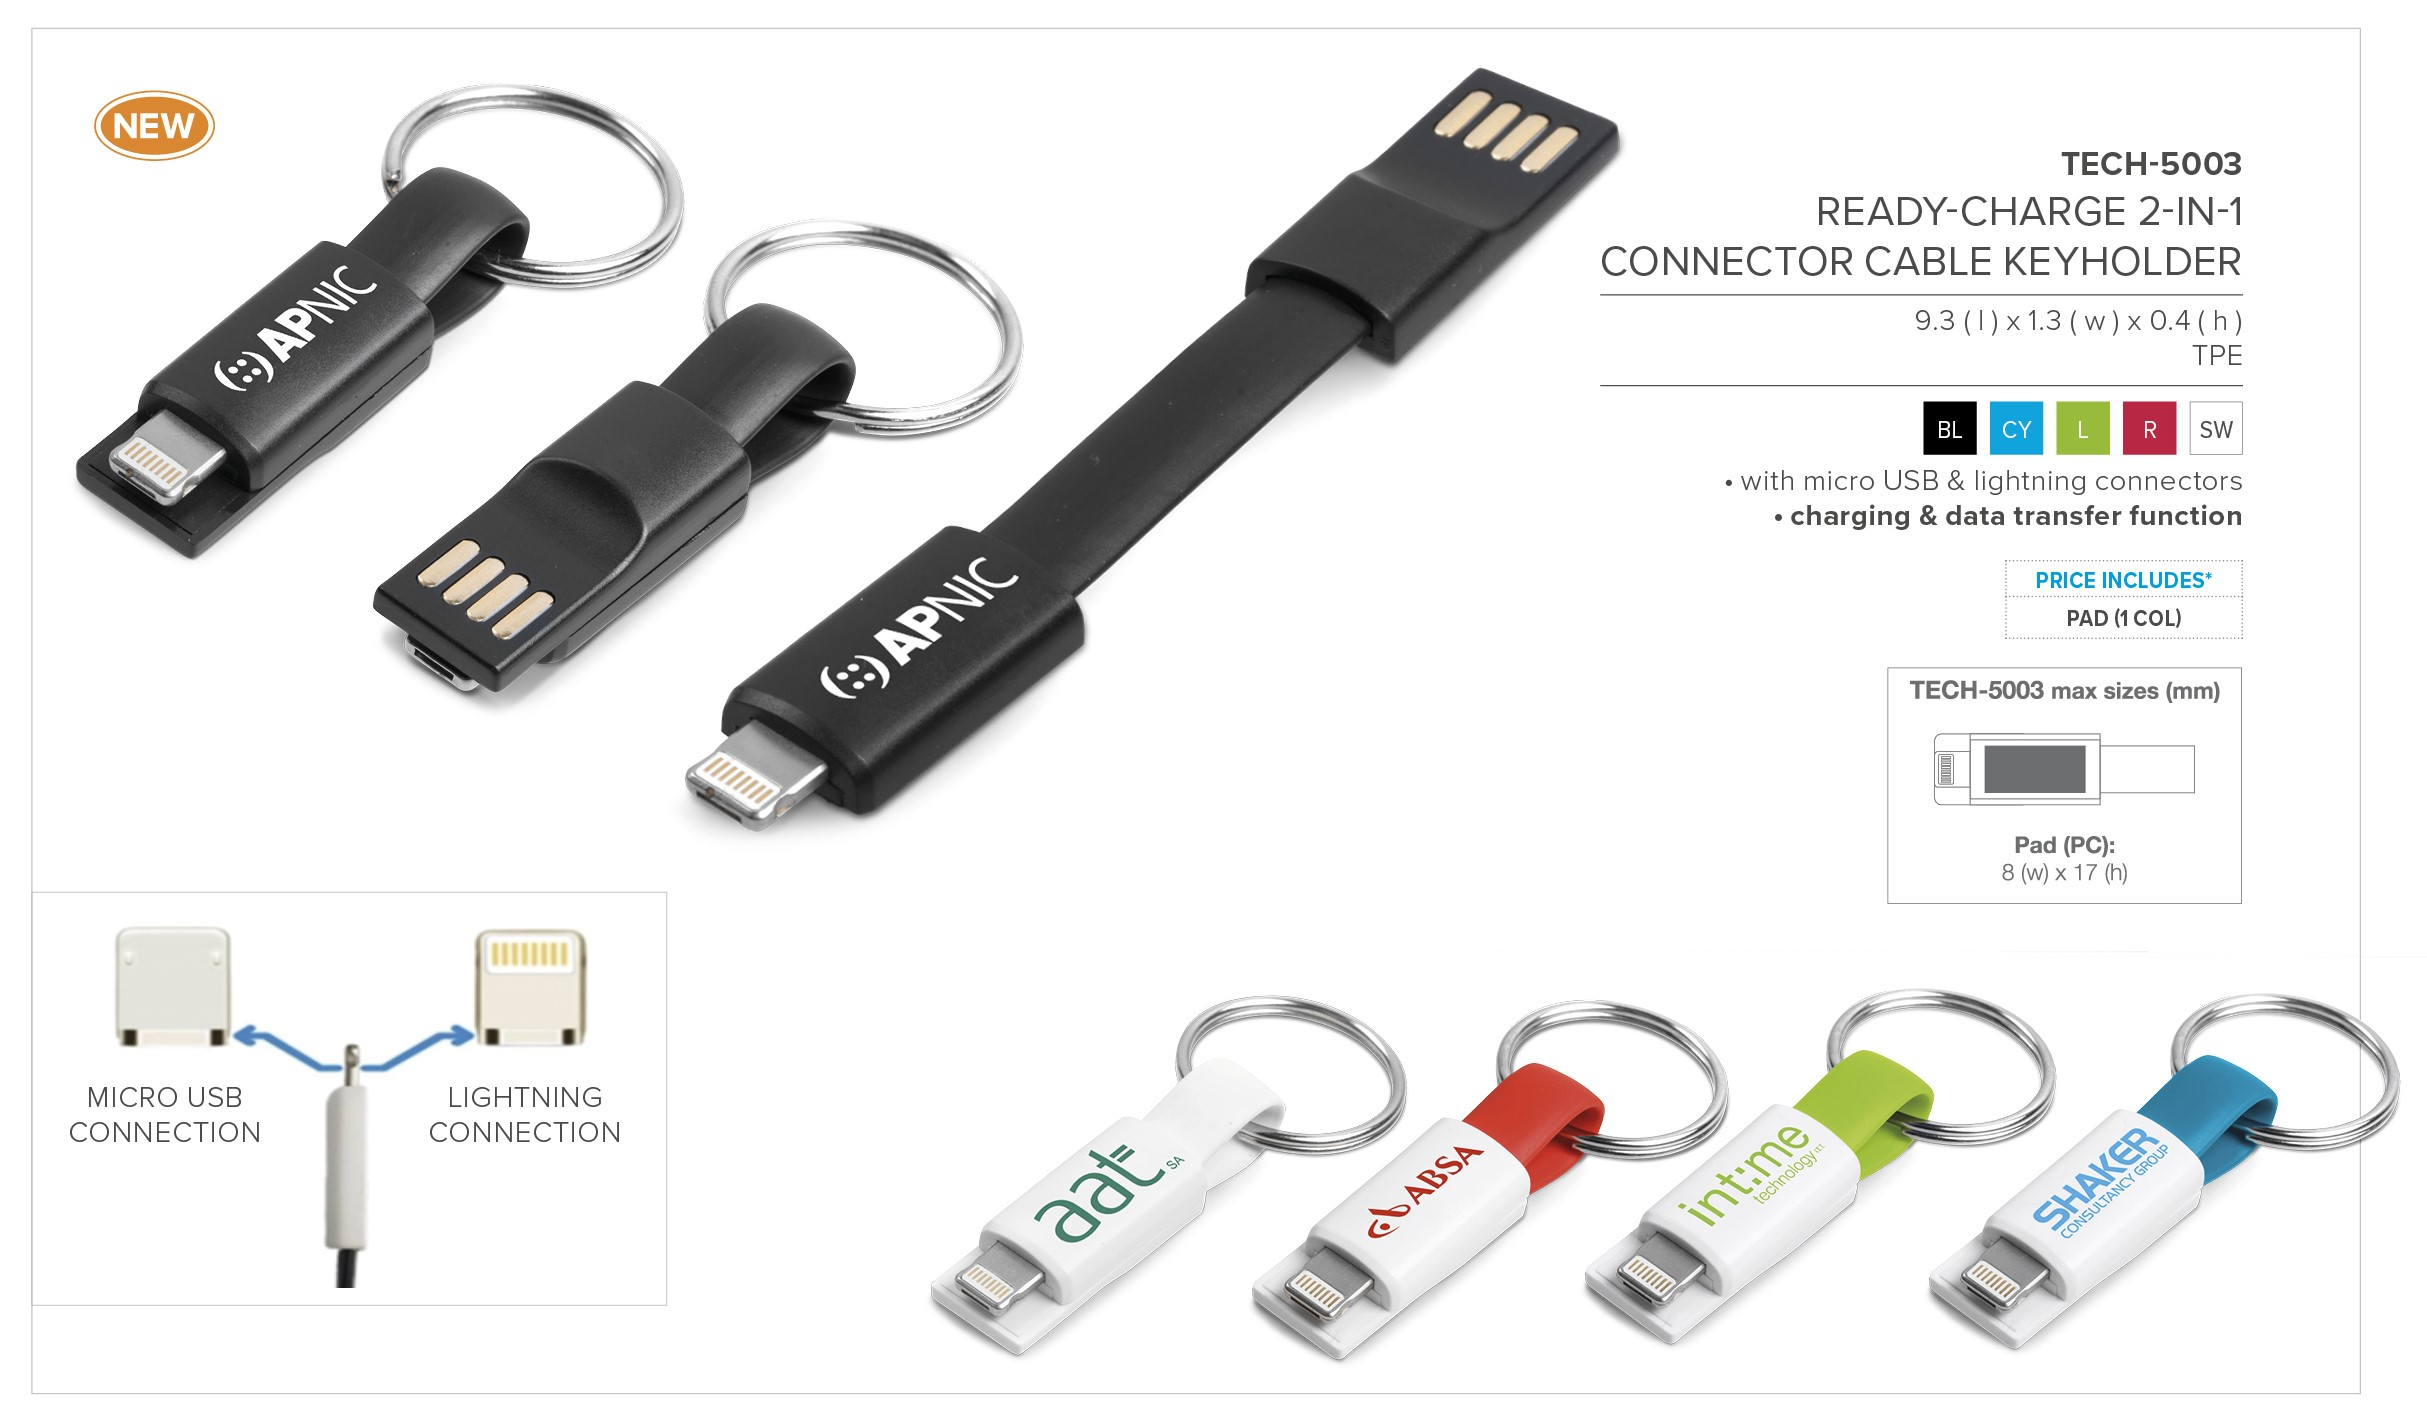 Ready-Charge 2-In-1 Connector Cable Keyholder